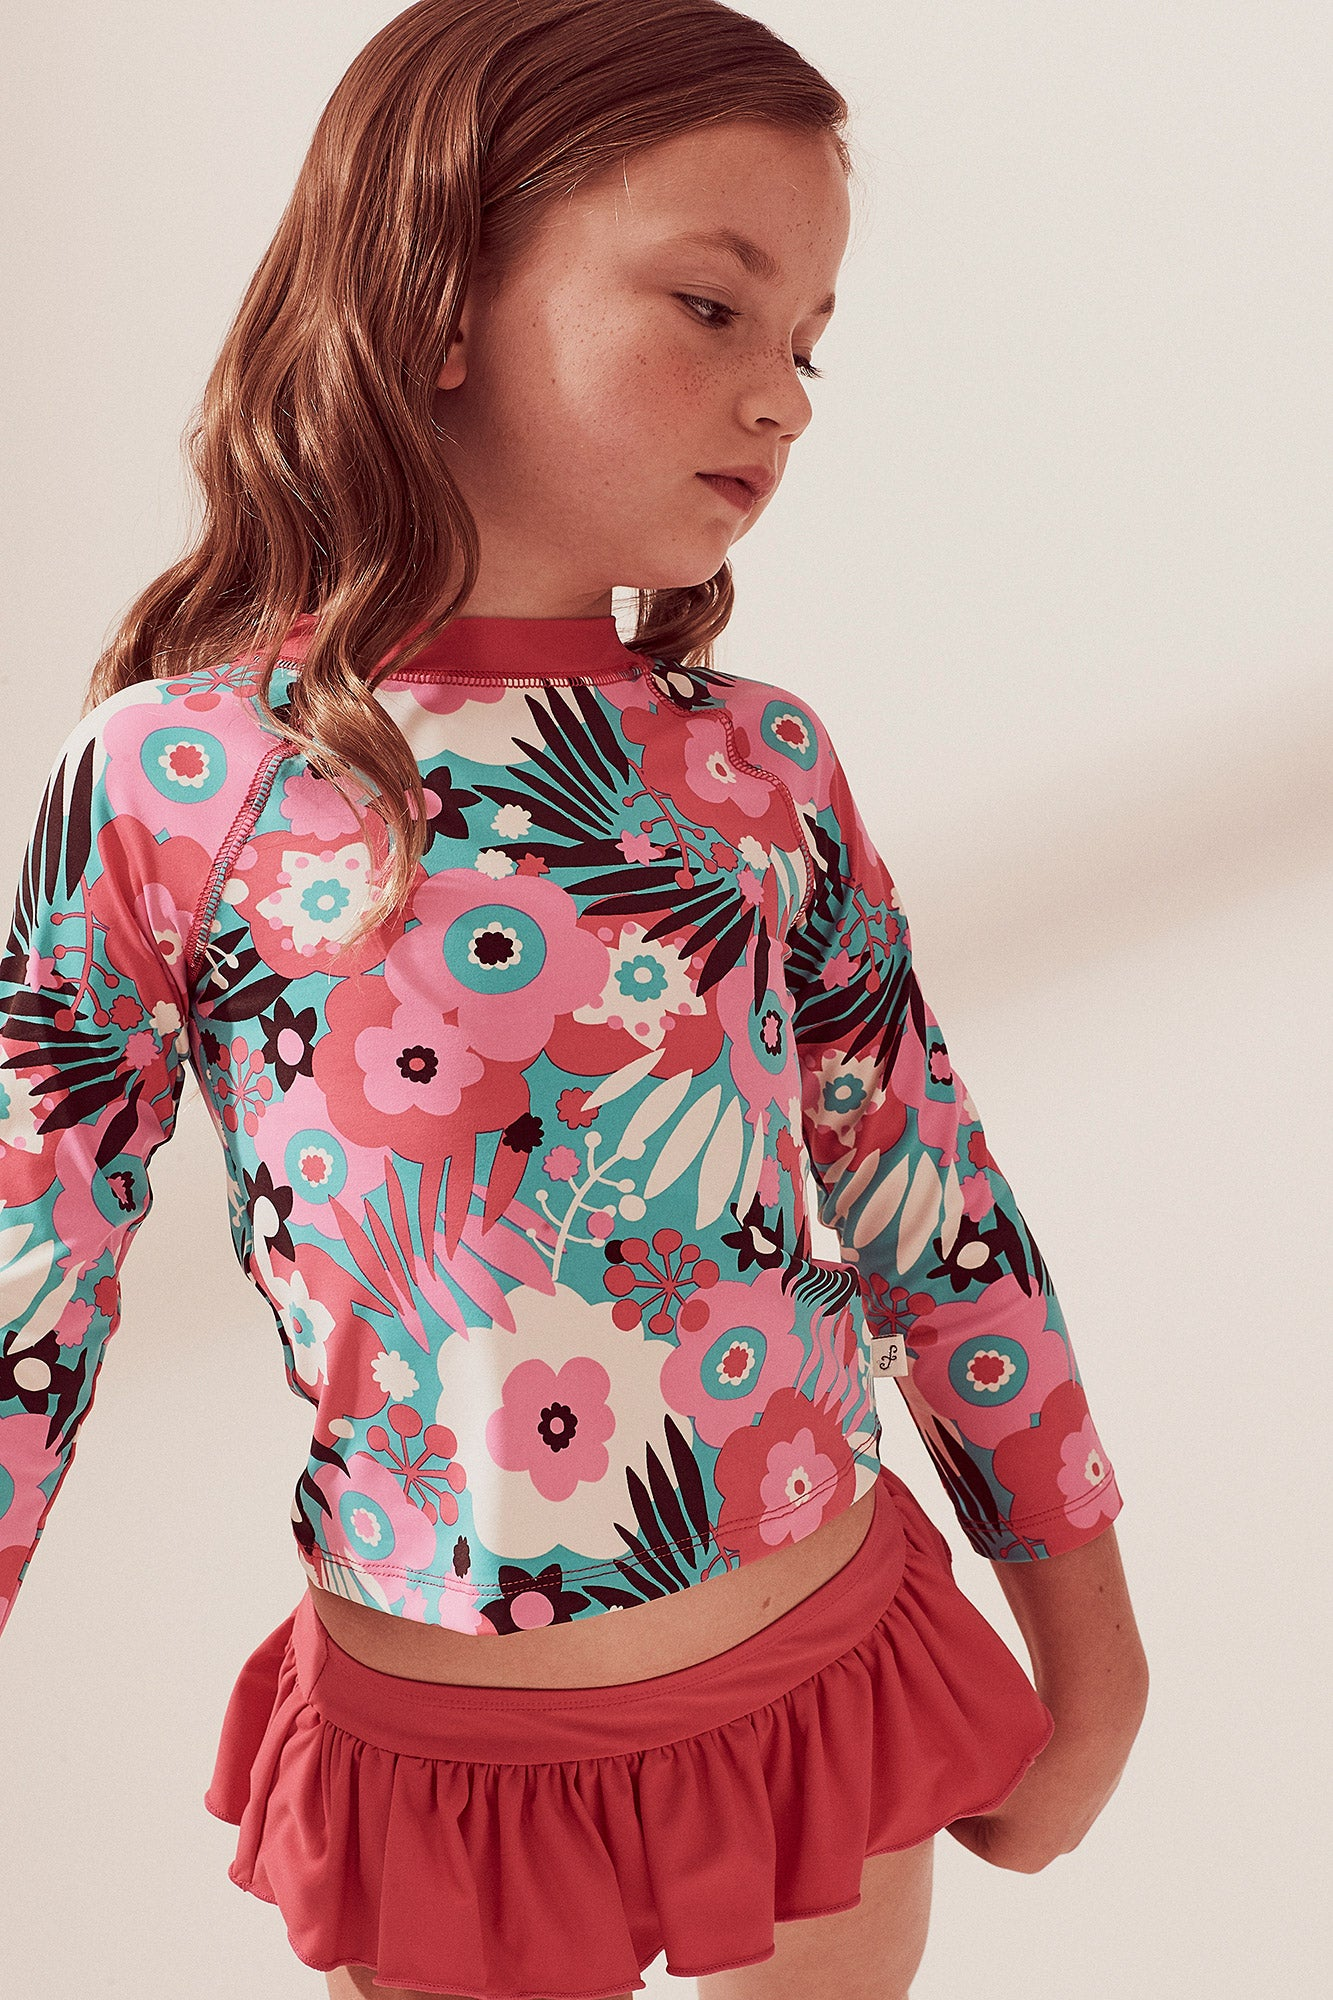 Vintage Floral Raglan Long Sleeve Rash Guard Set, hot pink